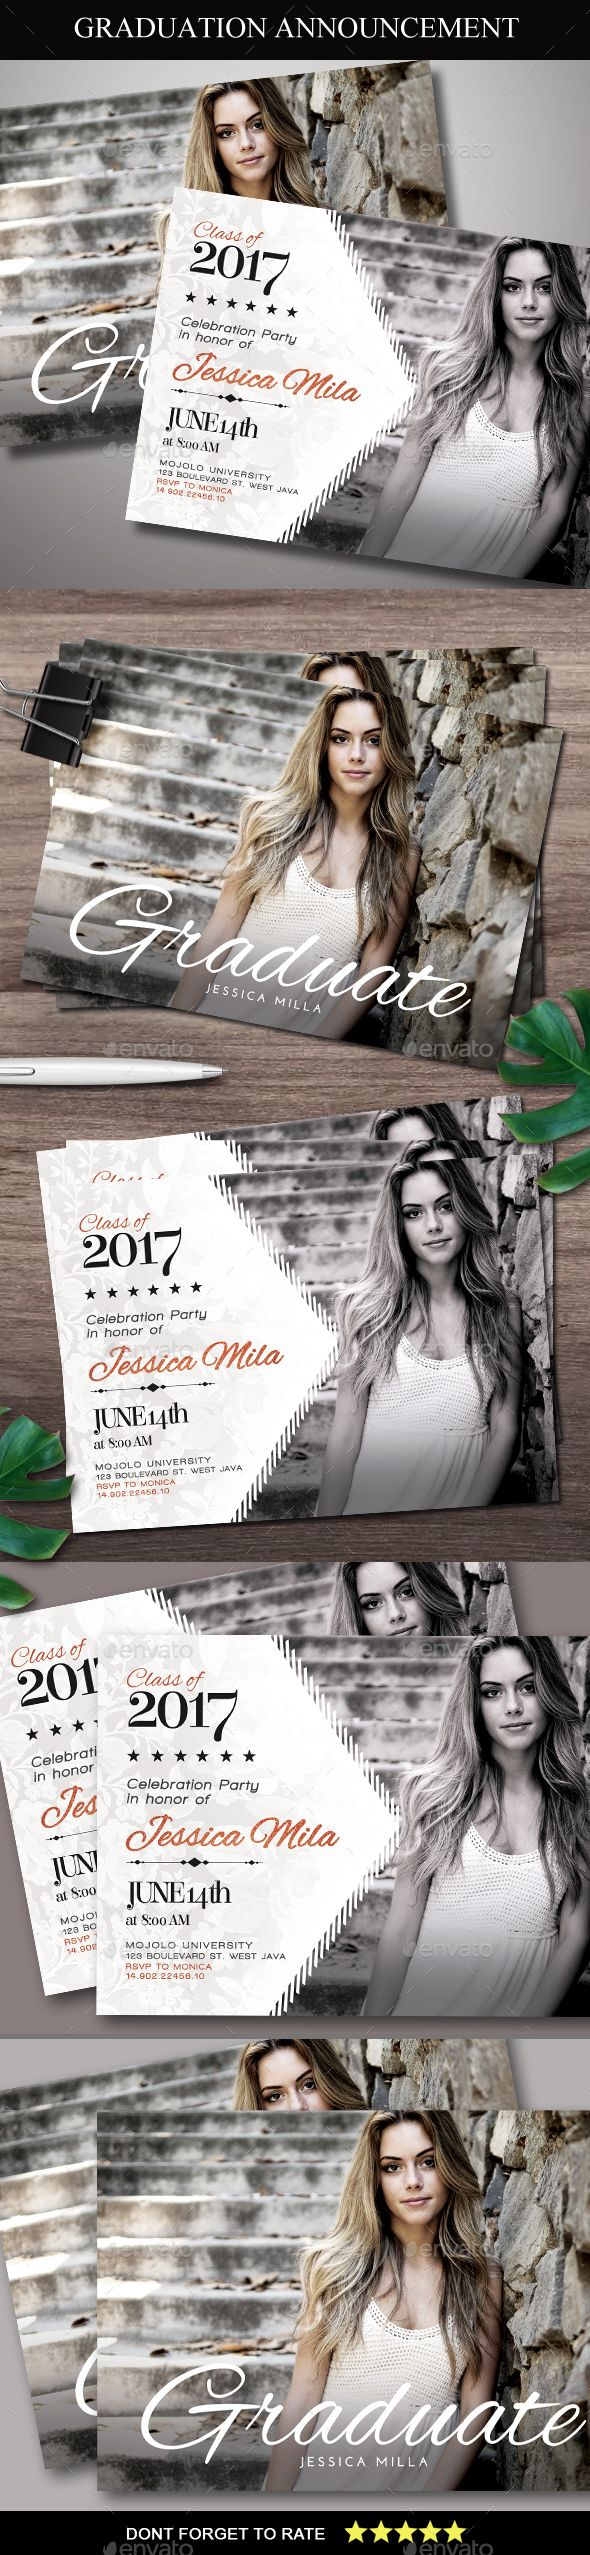 Graduation Announcement Card | Print templates, Template and Card ...